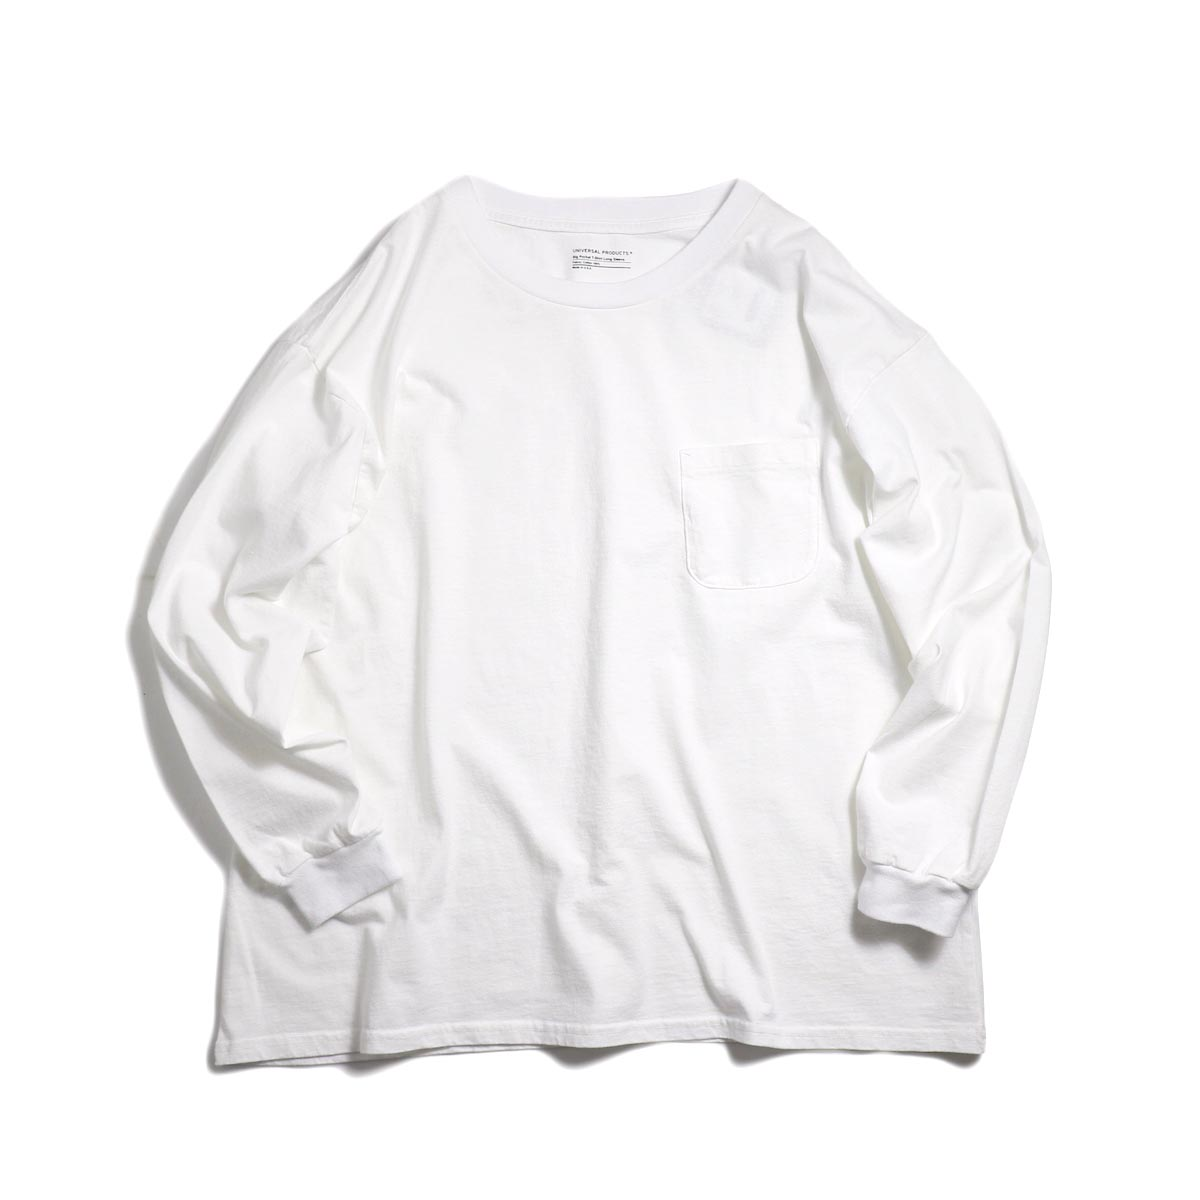 UNIVERSAL PRODUCTS / Heavy Weight L/S T-Shirt -White 正面